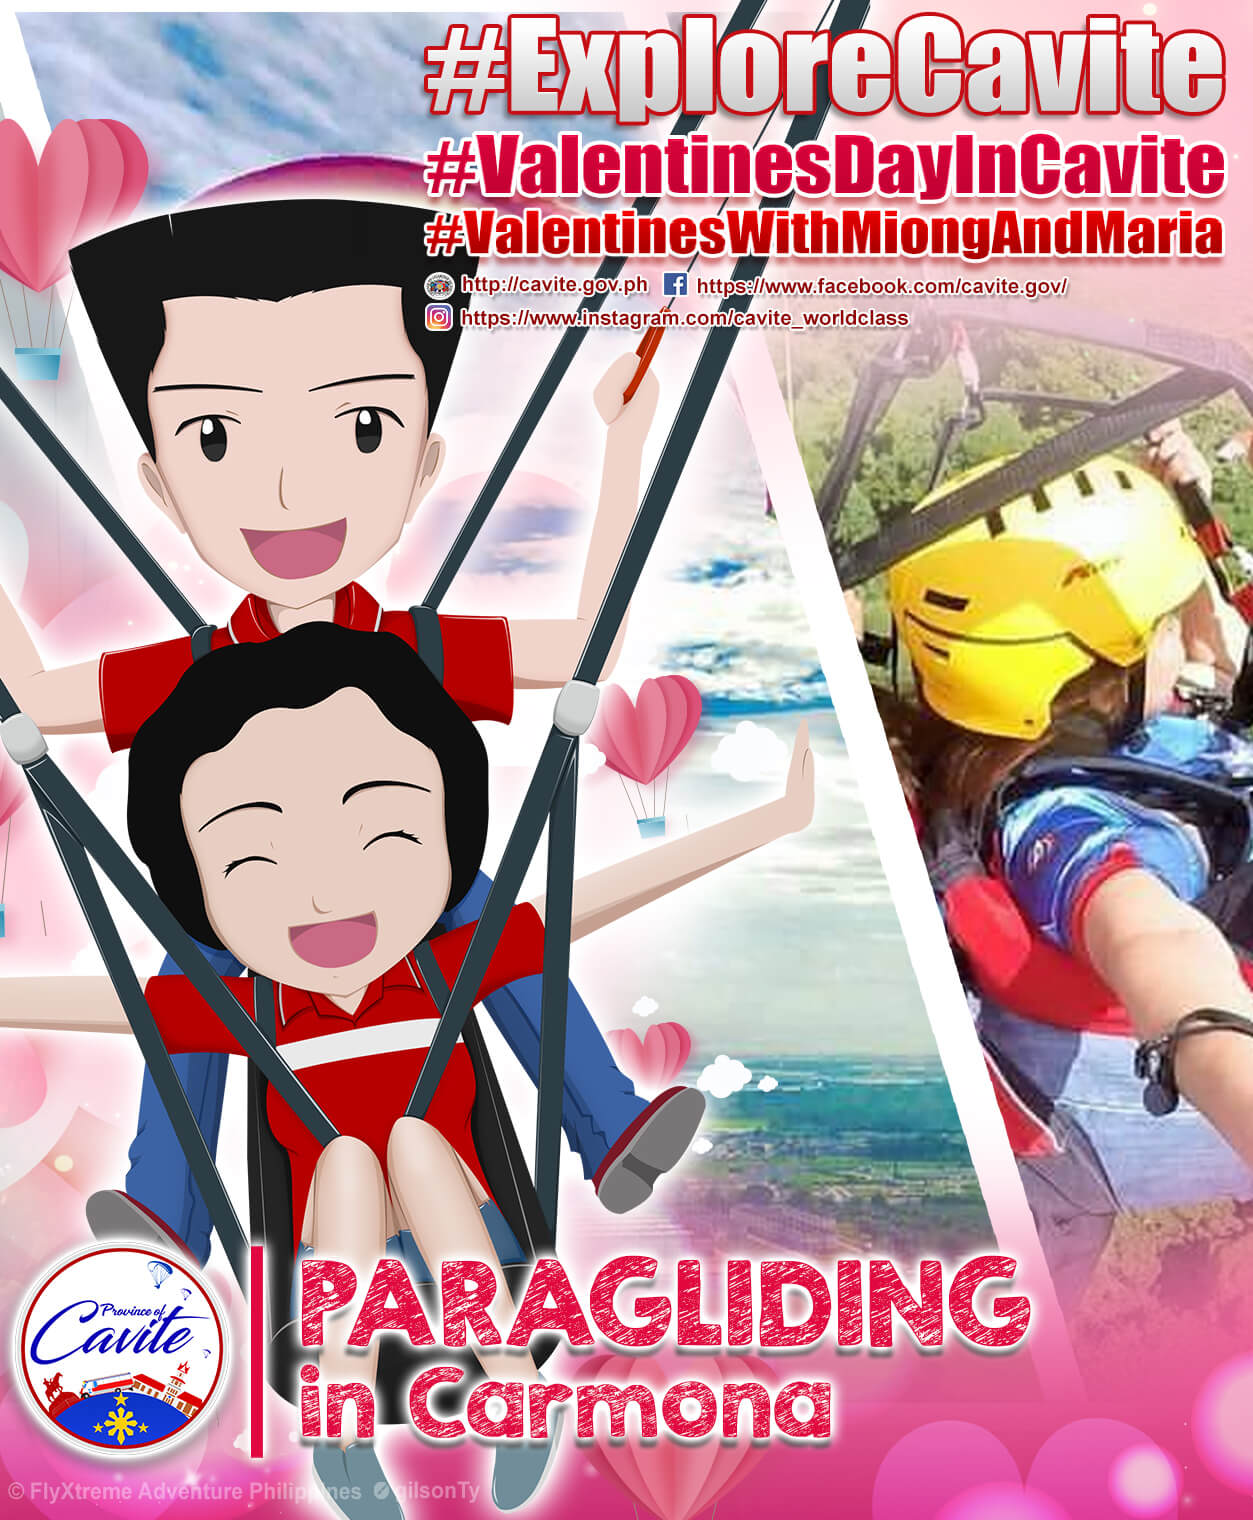 Explore Cavite – Paragliding in Carmona